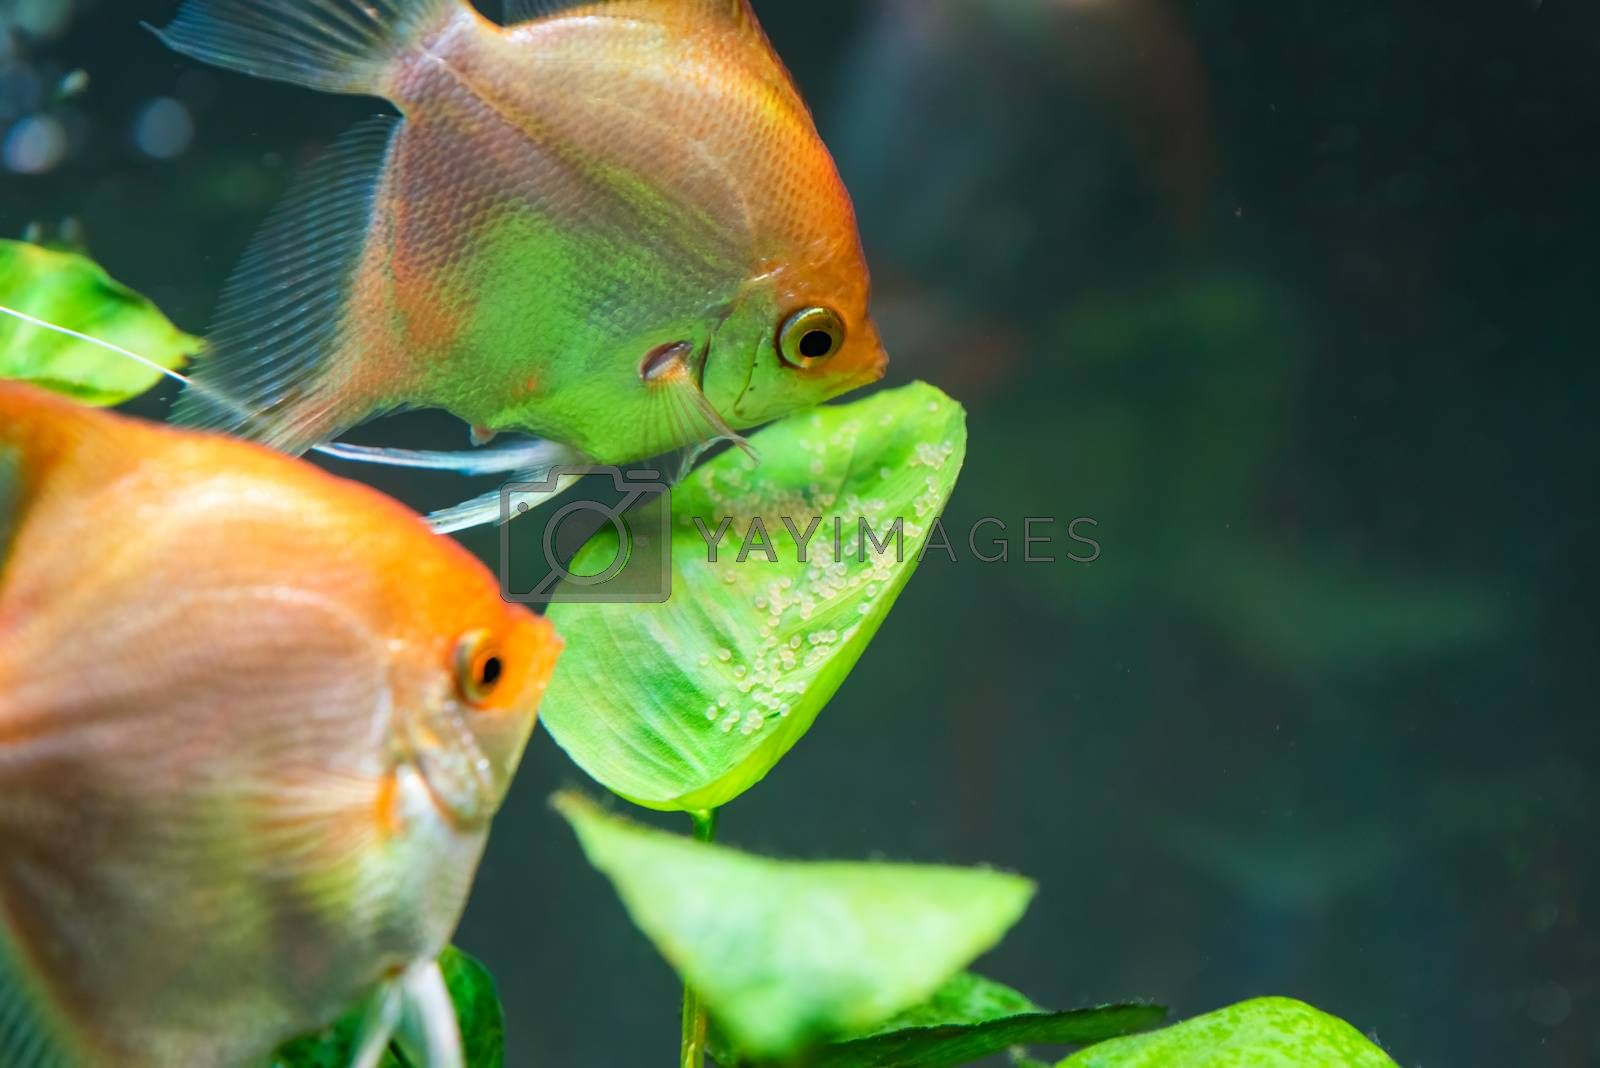 Pair of Gold Pterophyllum Scalare in aqarium, yellow angelfish guarding eggs. Roe on the leaf. selective focus